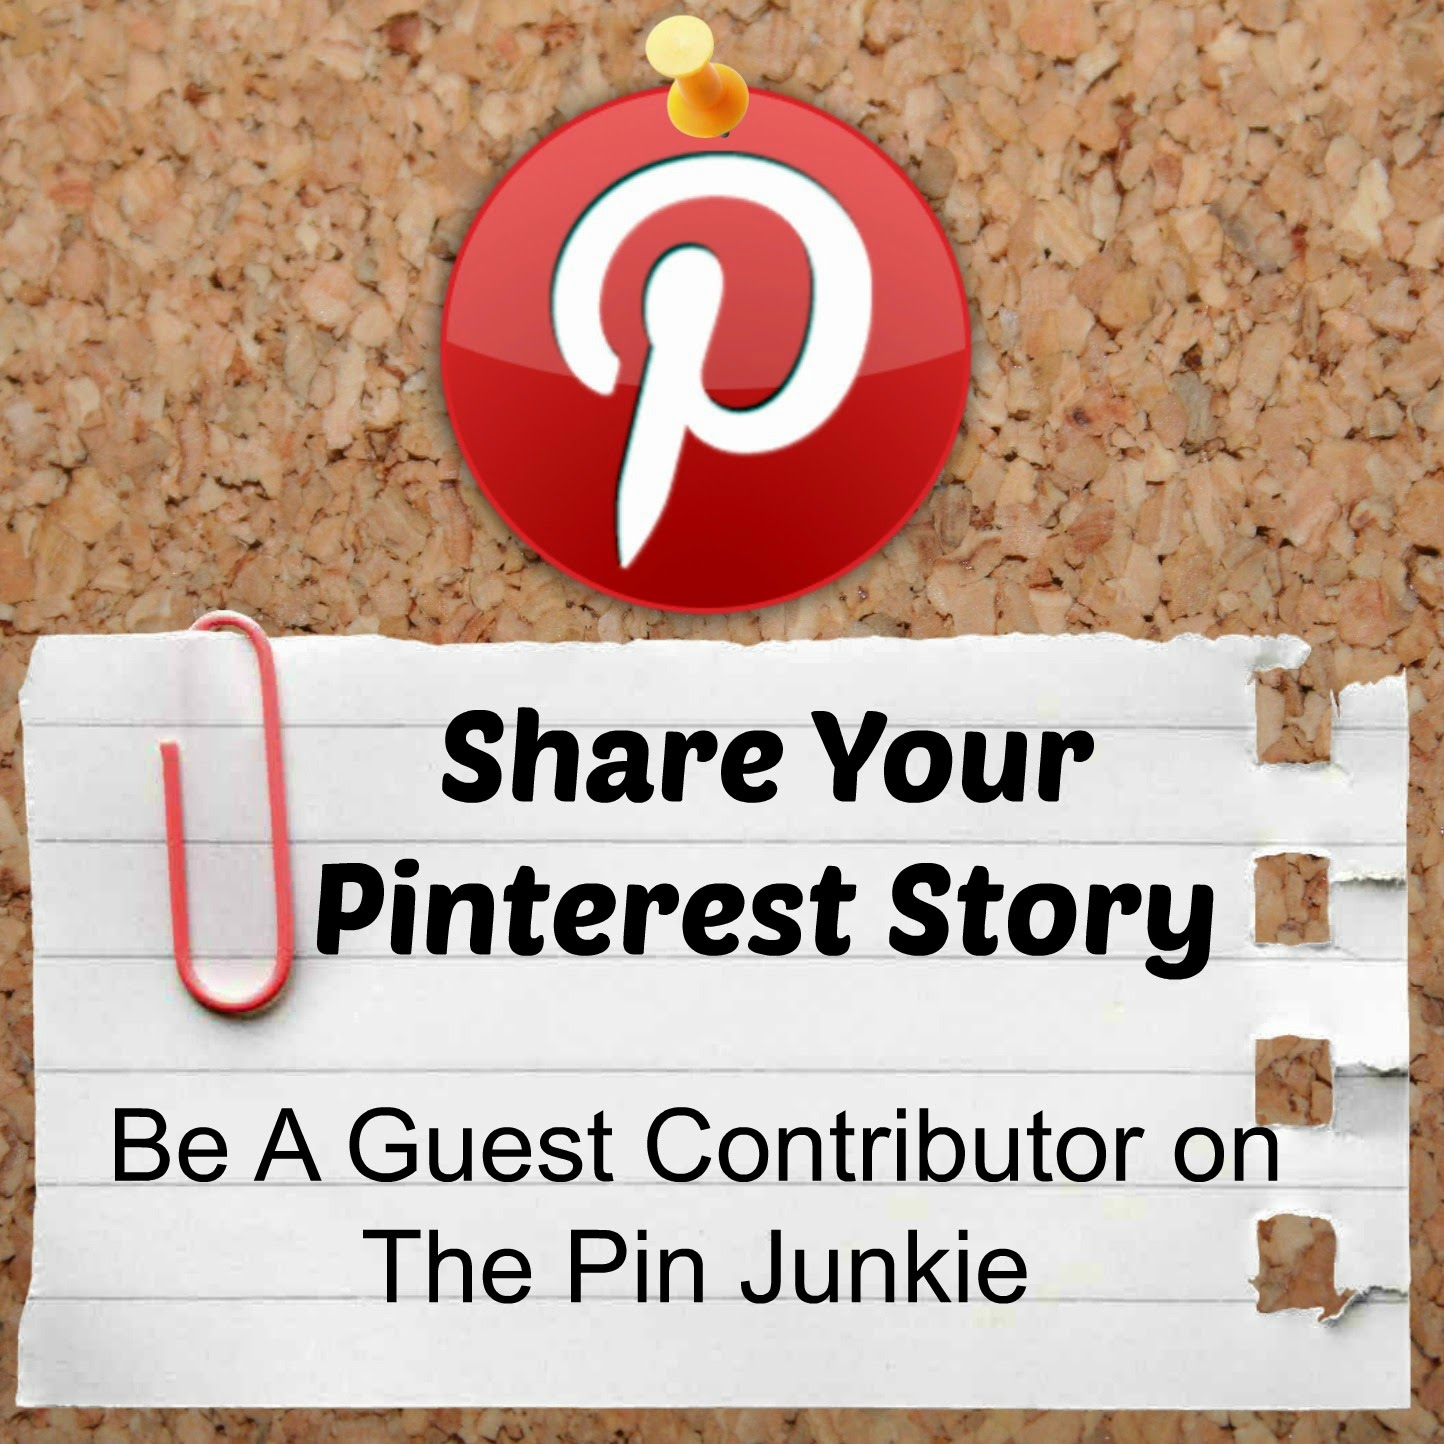 Share your Pinterest story